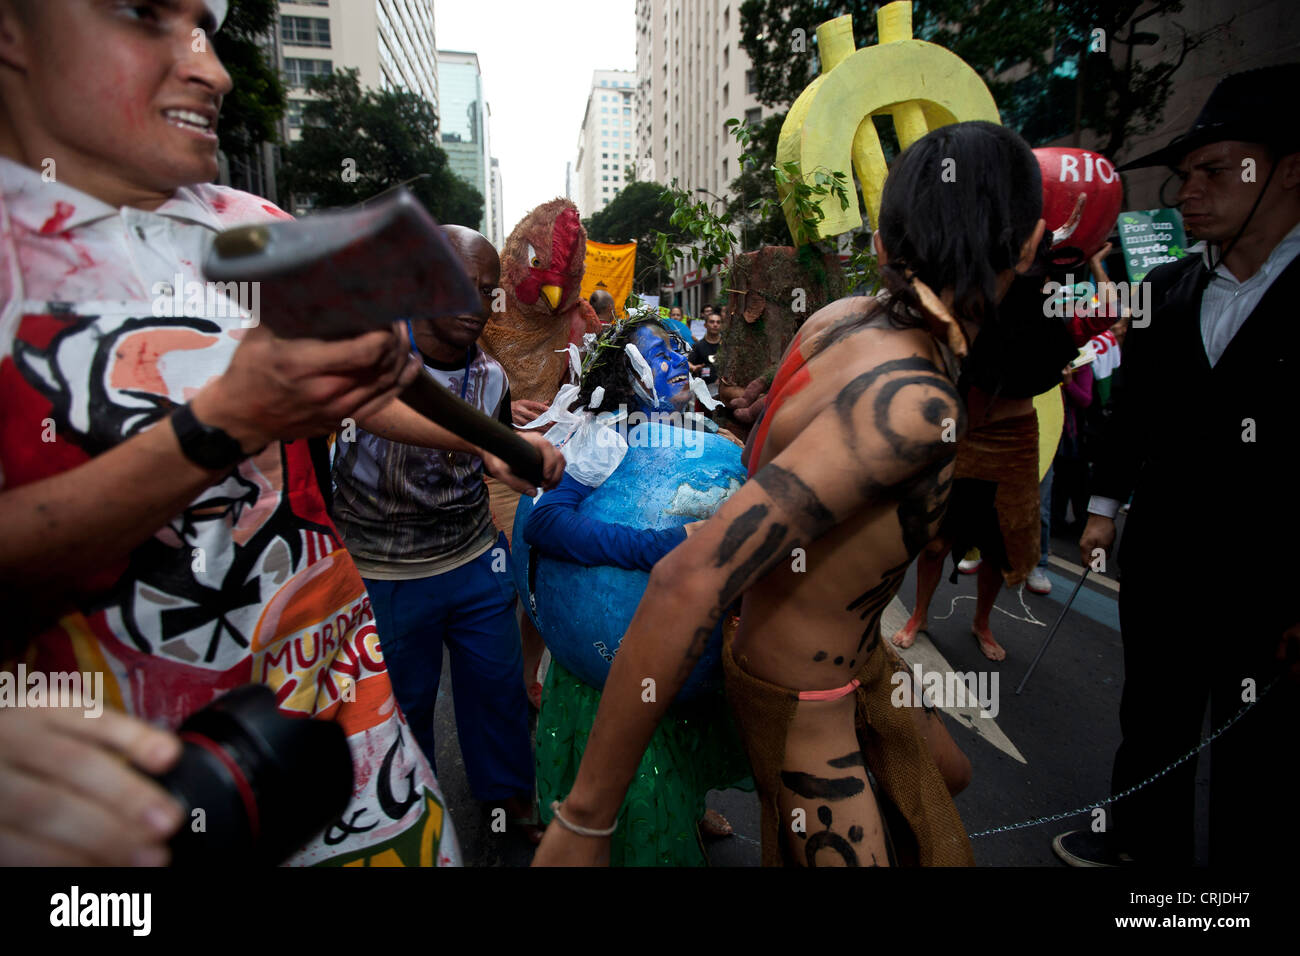 People's Summit at Rio+20 for Social and Environmental Justice Staging agony of planet and destruction of natural - Stock Image